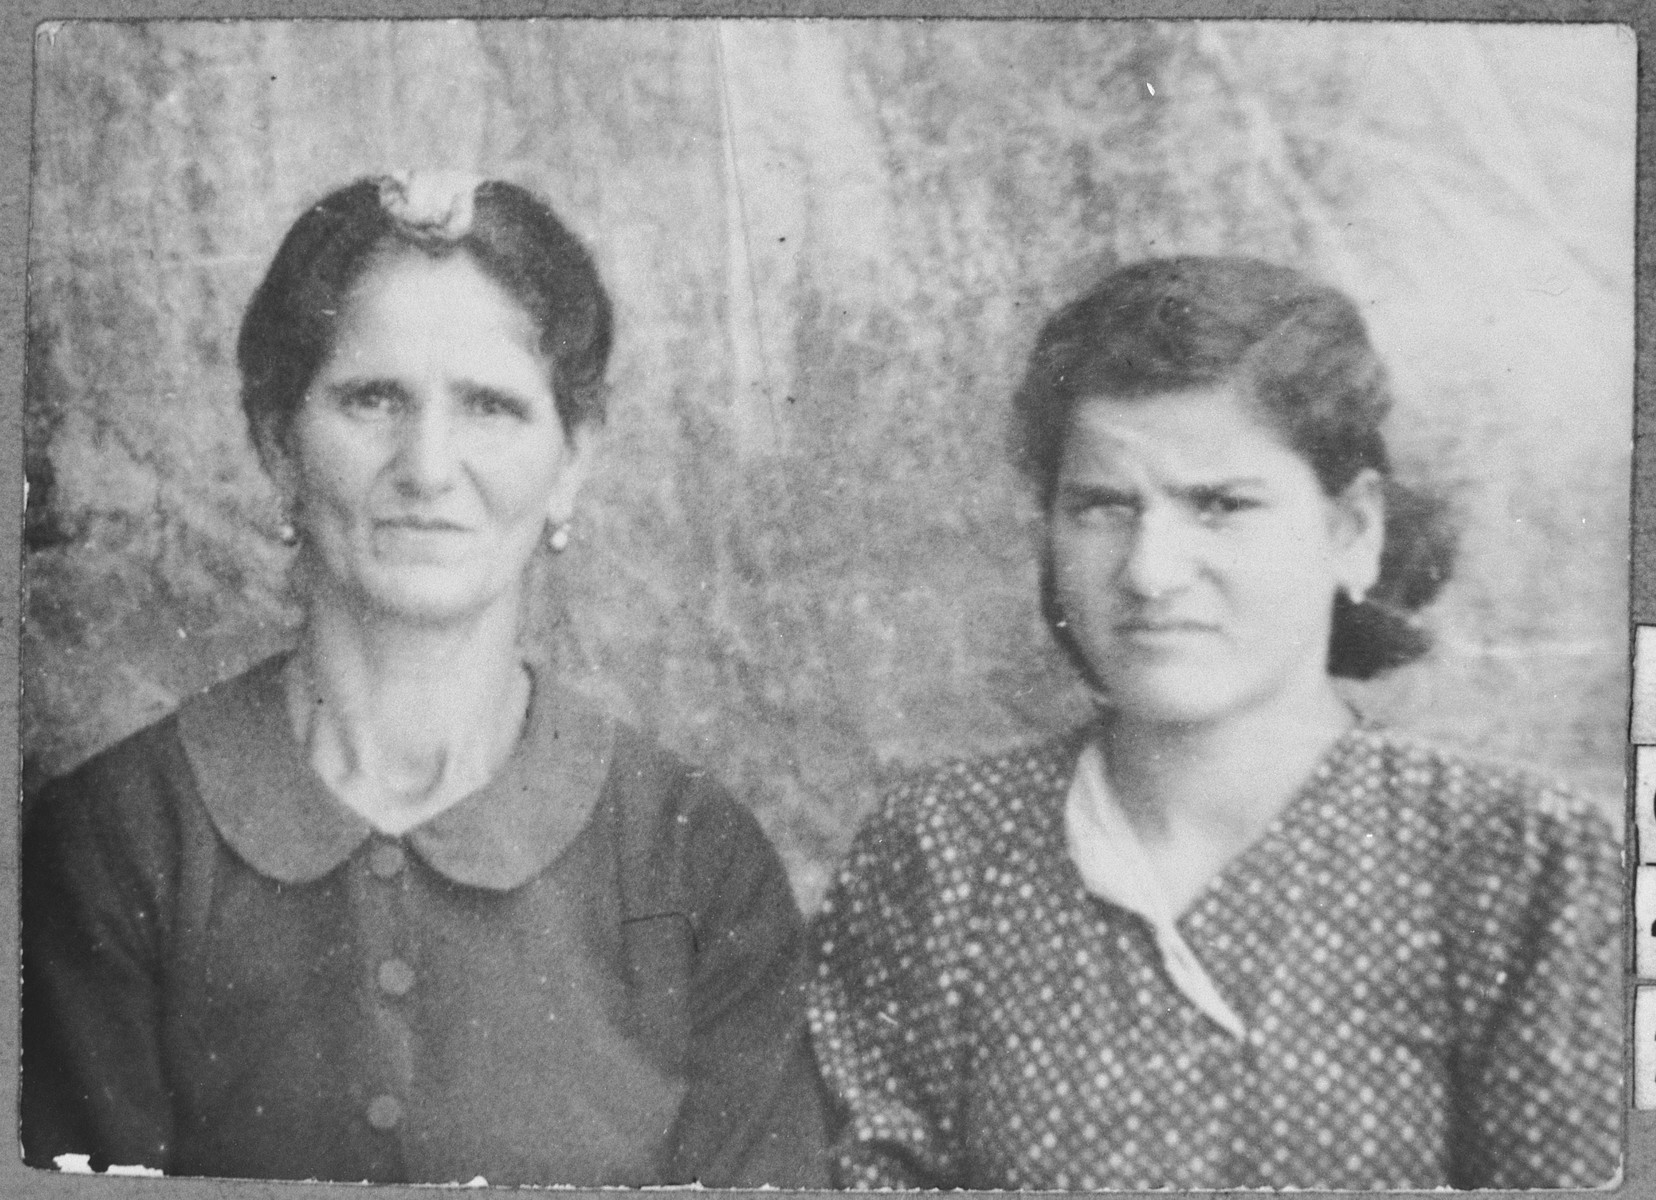 Portrait of Ester Hasson, [wife of Aron Hasson], and Aron's daughter, Lunar.  Lunar was a student.  They lived at Krstitsa 11 in Bitola.